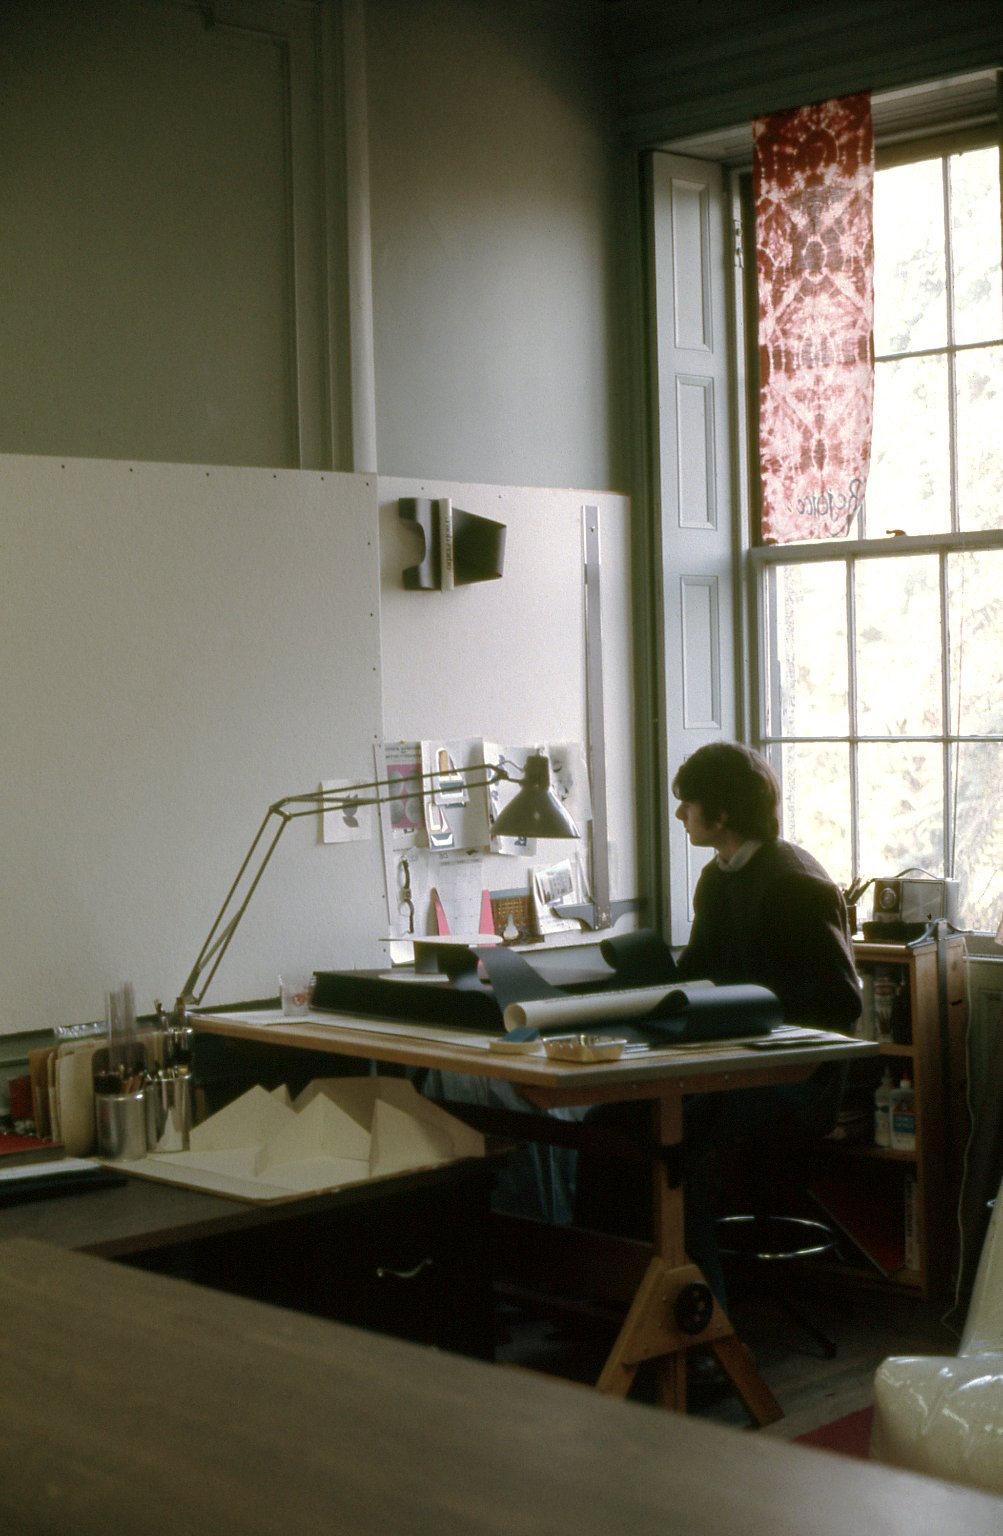 A collection of photographs documenting students in art classes, studios and working on art projects in a variety of mediums including painting, drawing, wood cut, sculpture, illustration, color charts, design and mixed media at Swain School of Design, New Bedford, Massachusetts. Many images include interior view of the sschool.